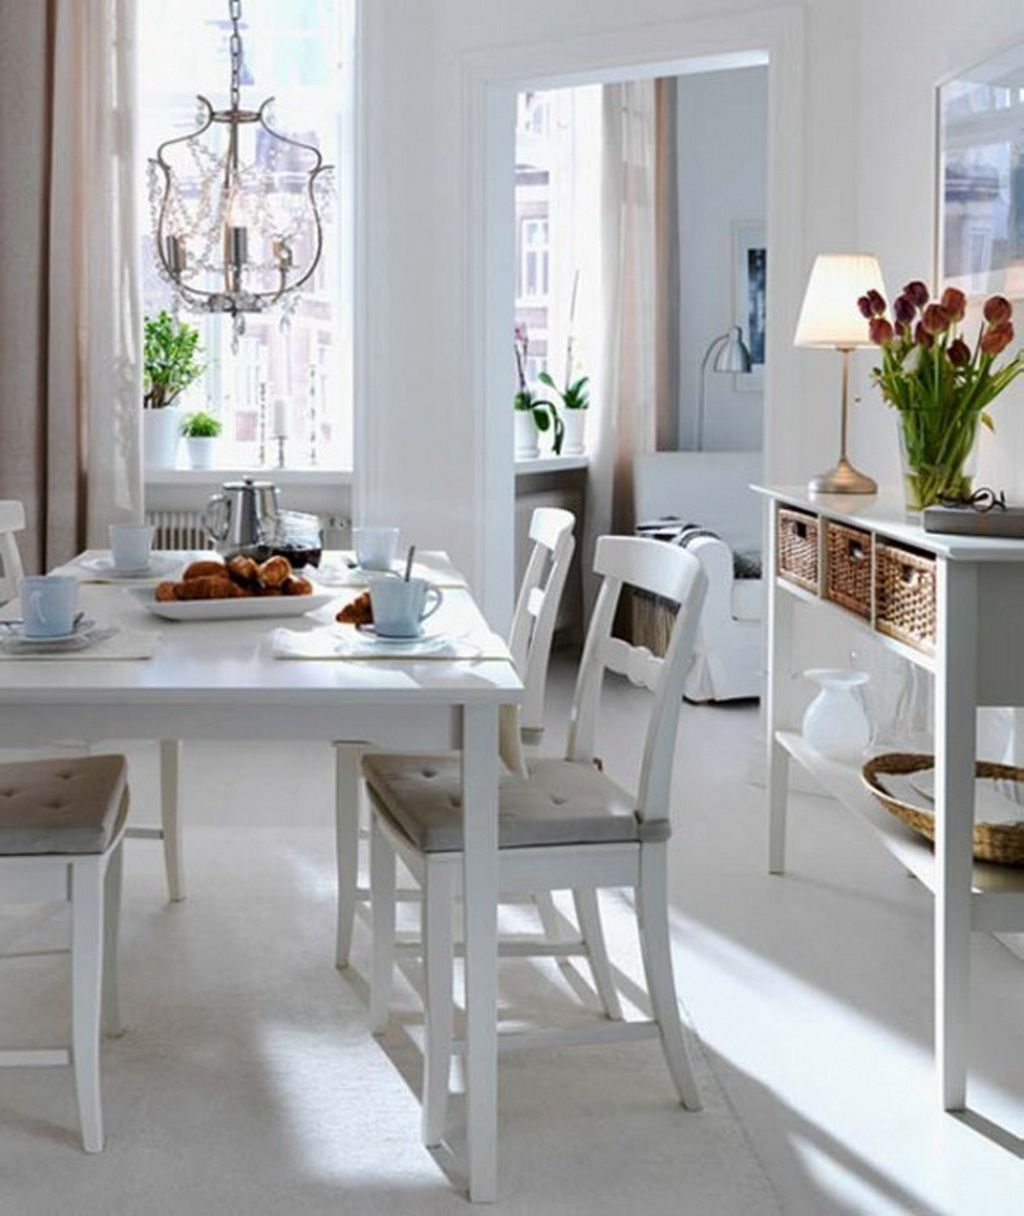 Dining Room Dining Room Decorating Ideas Inspiration Photos For Small Ikea Dining Room Dining Room Small Small Dining Room Set